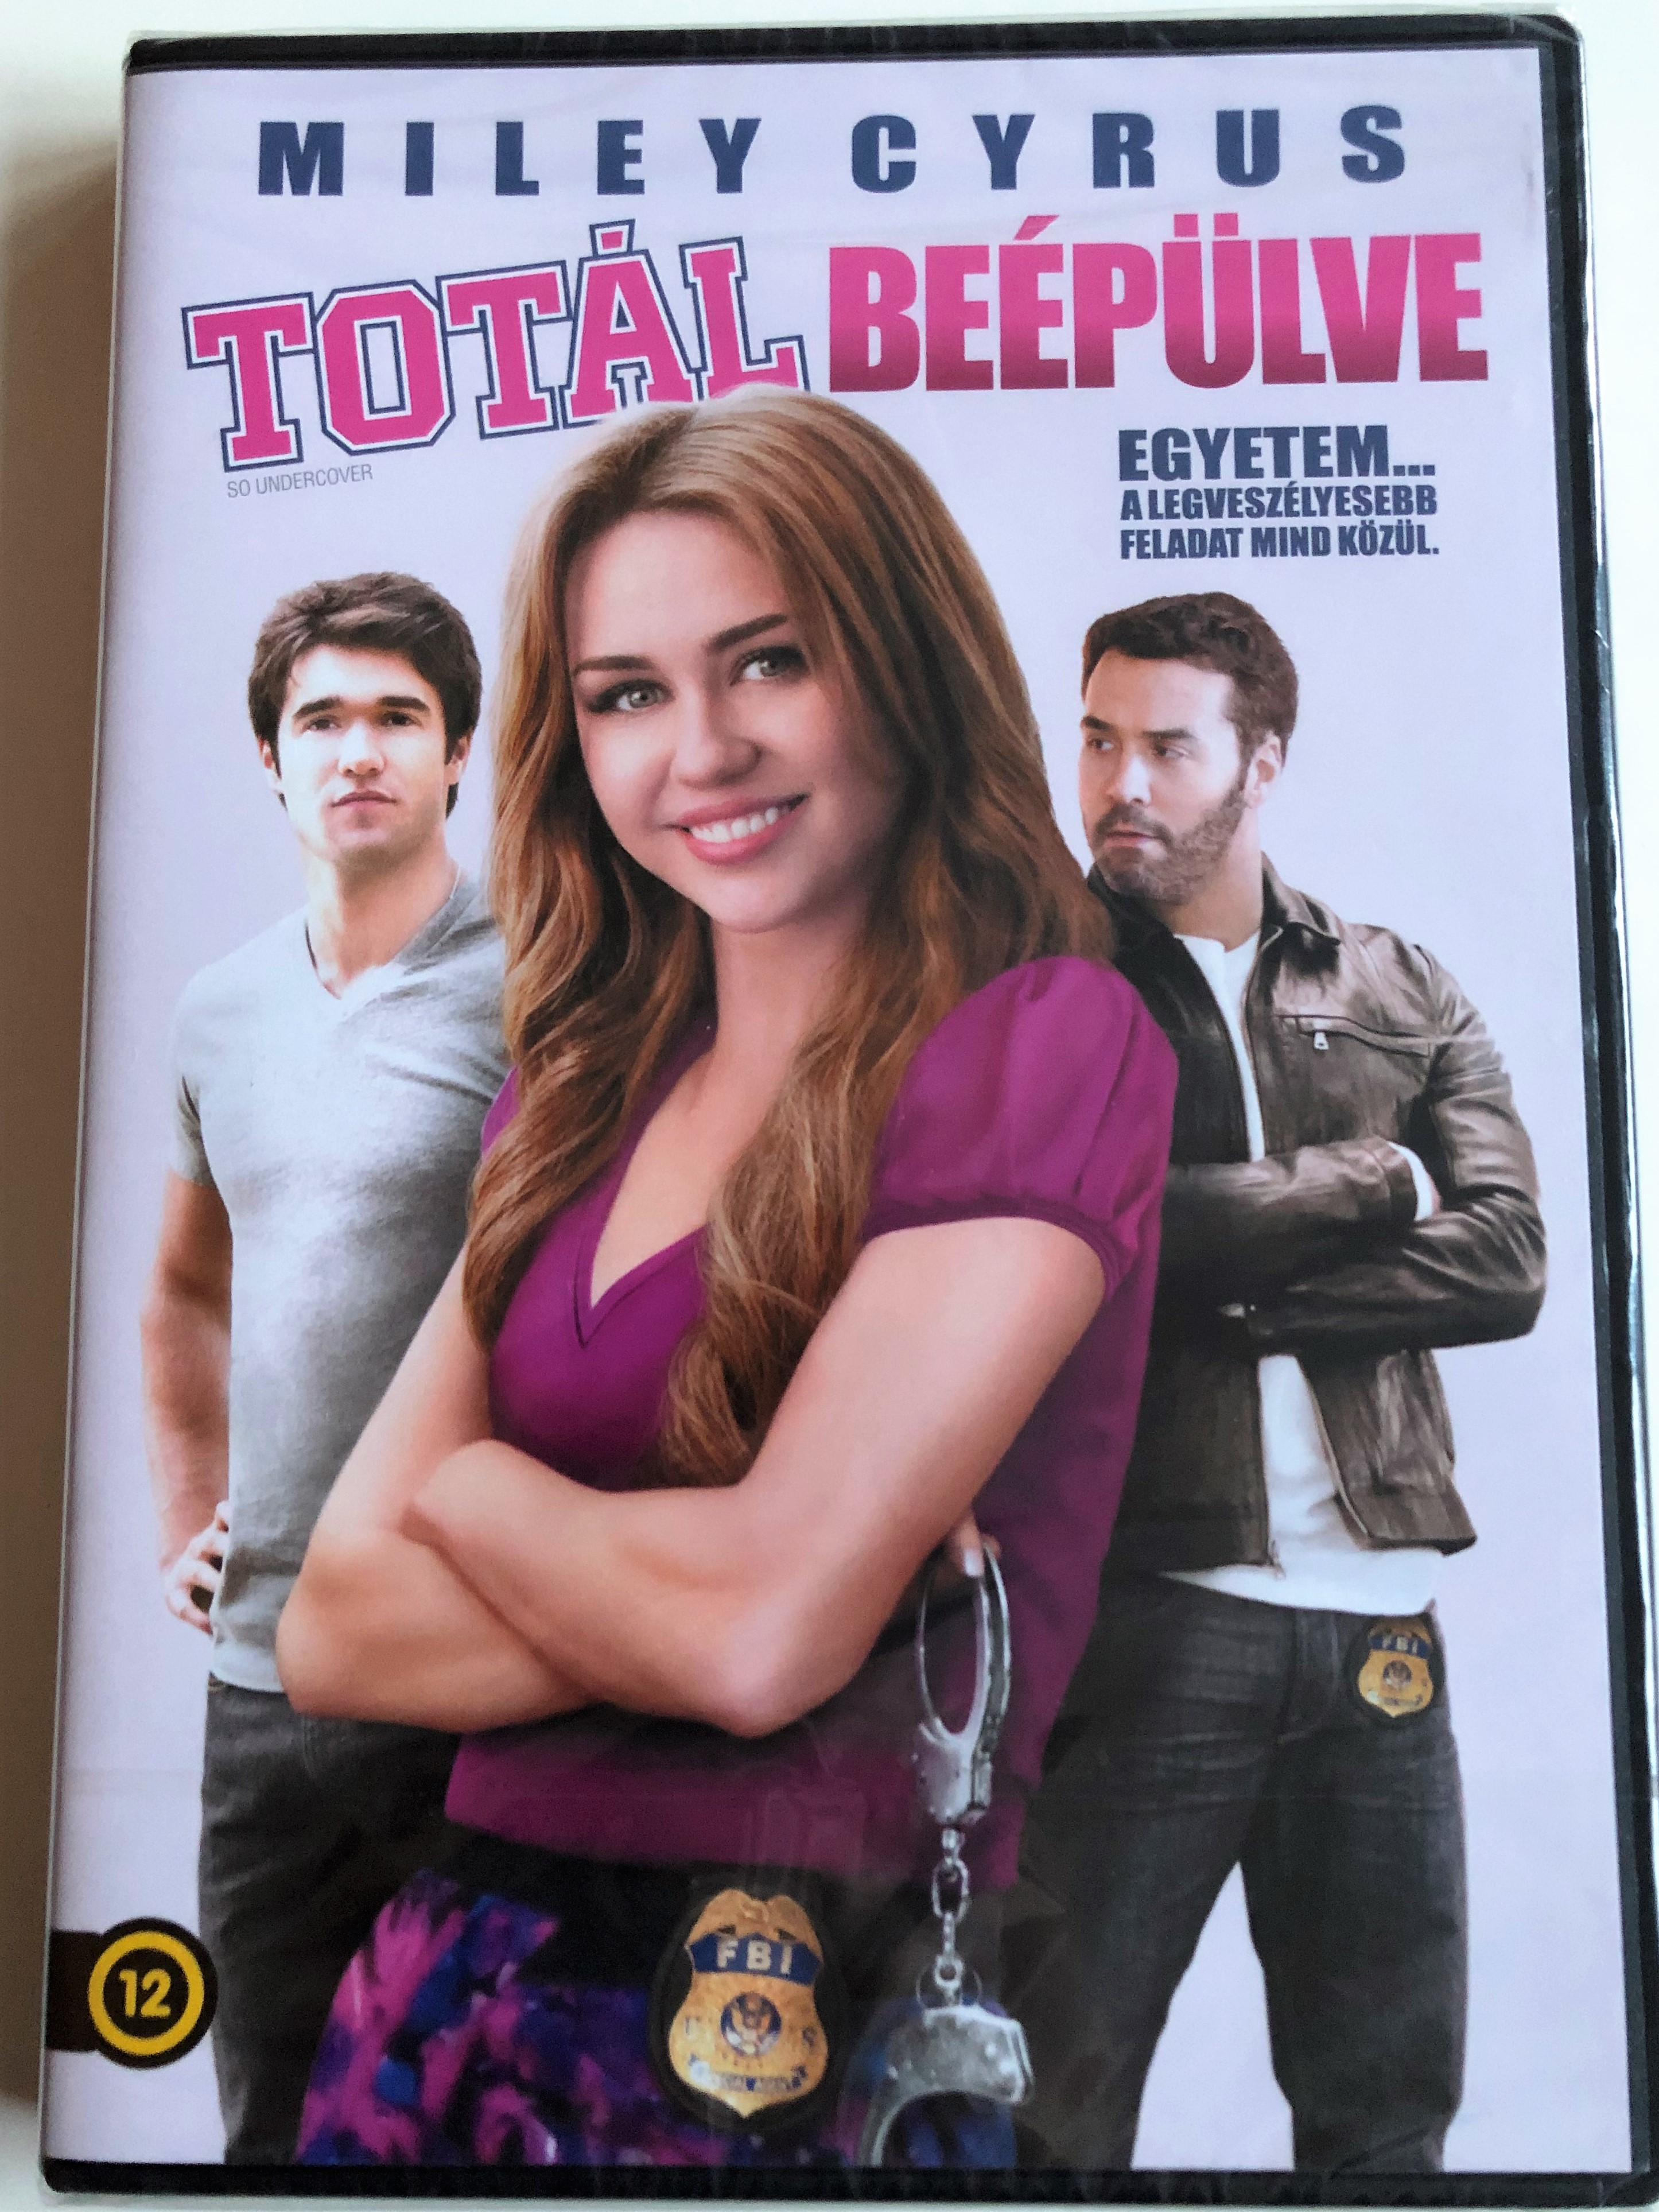 so-undercover-dvd-2012-tot-l-be-p-lve-directed-by-tom-vaughan-starring-miley-cyrus-jeremy-piven-1.jpg